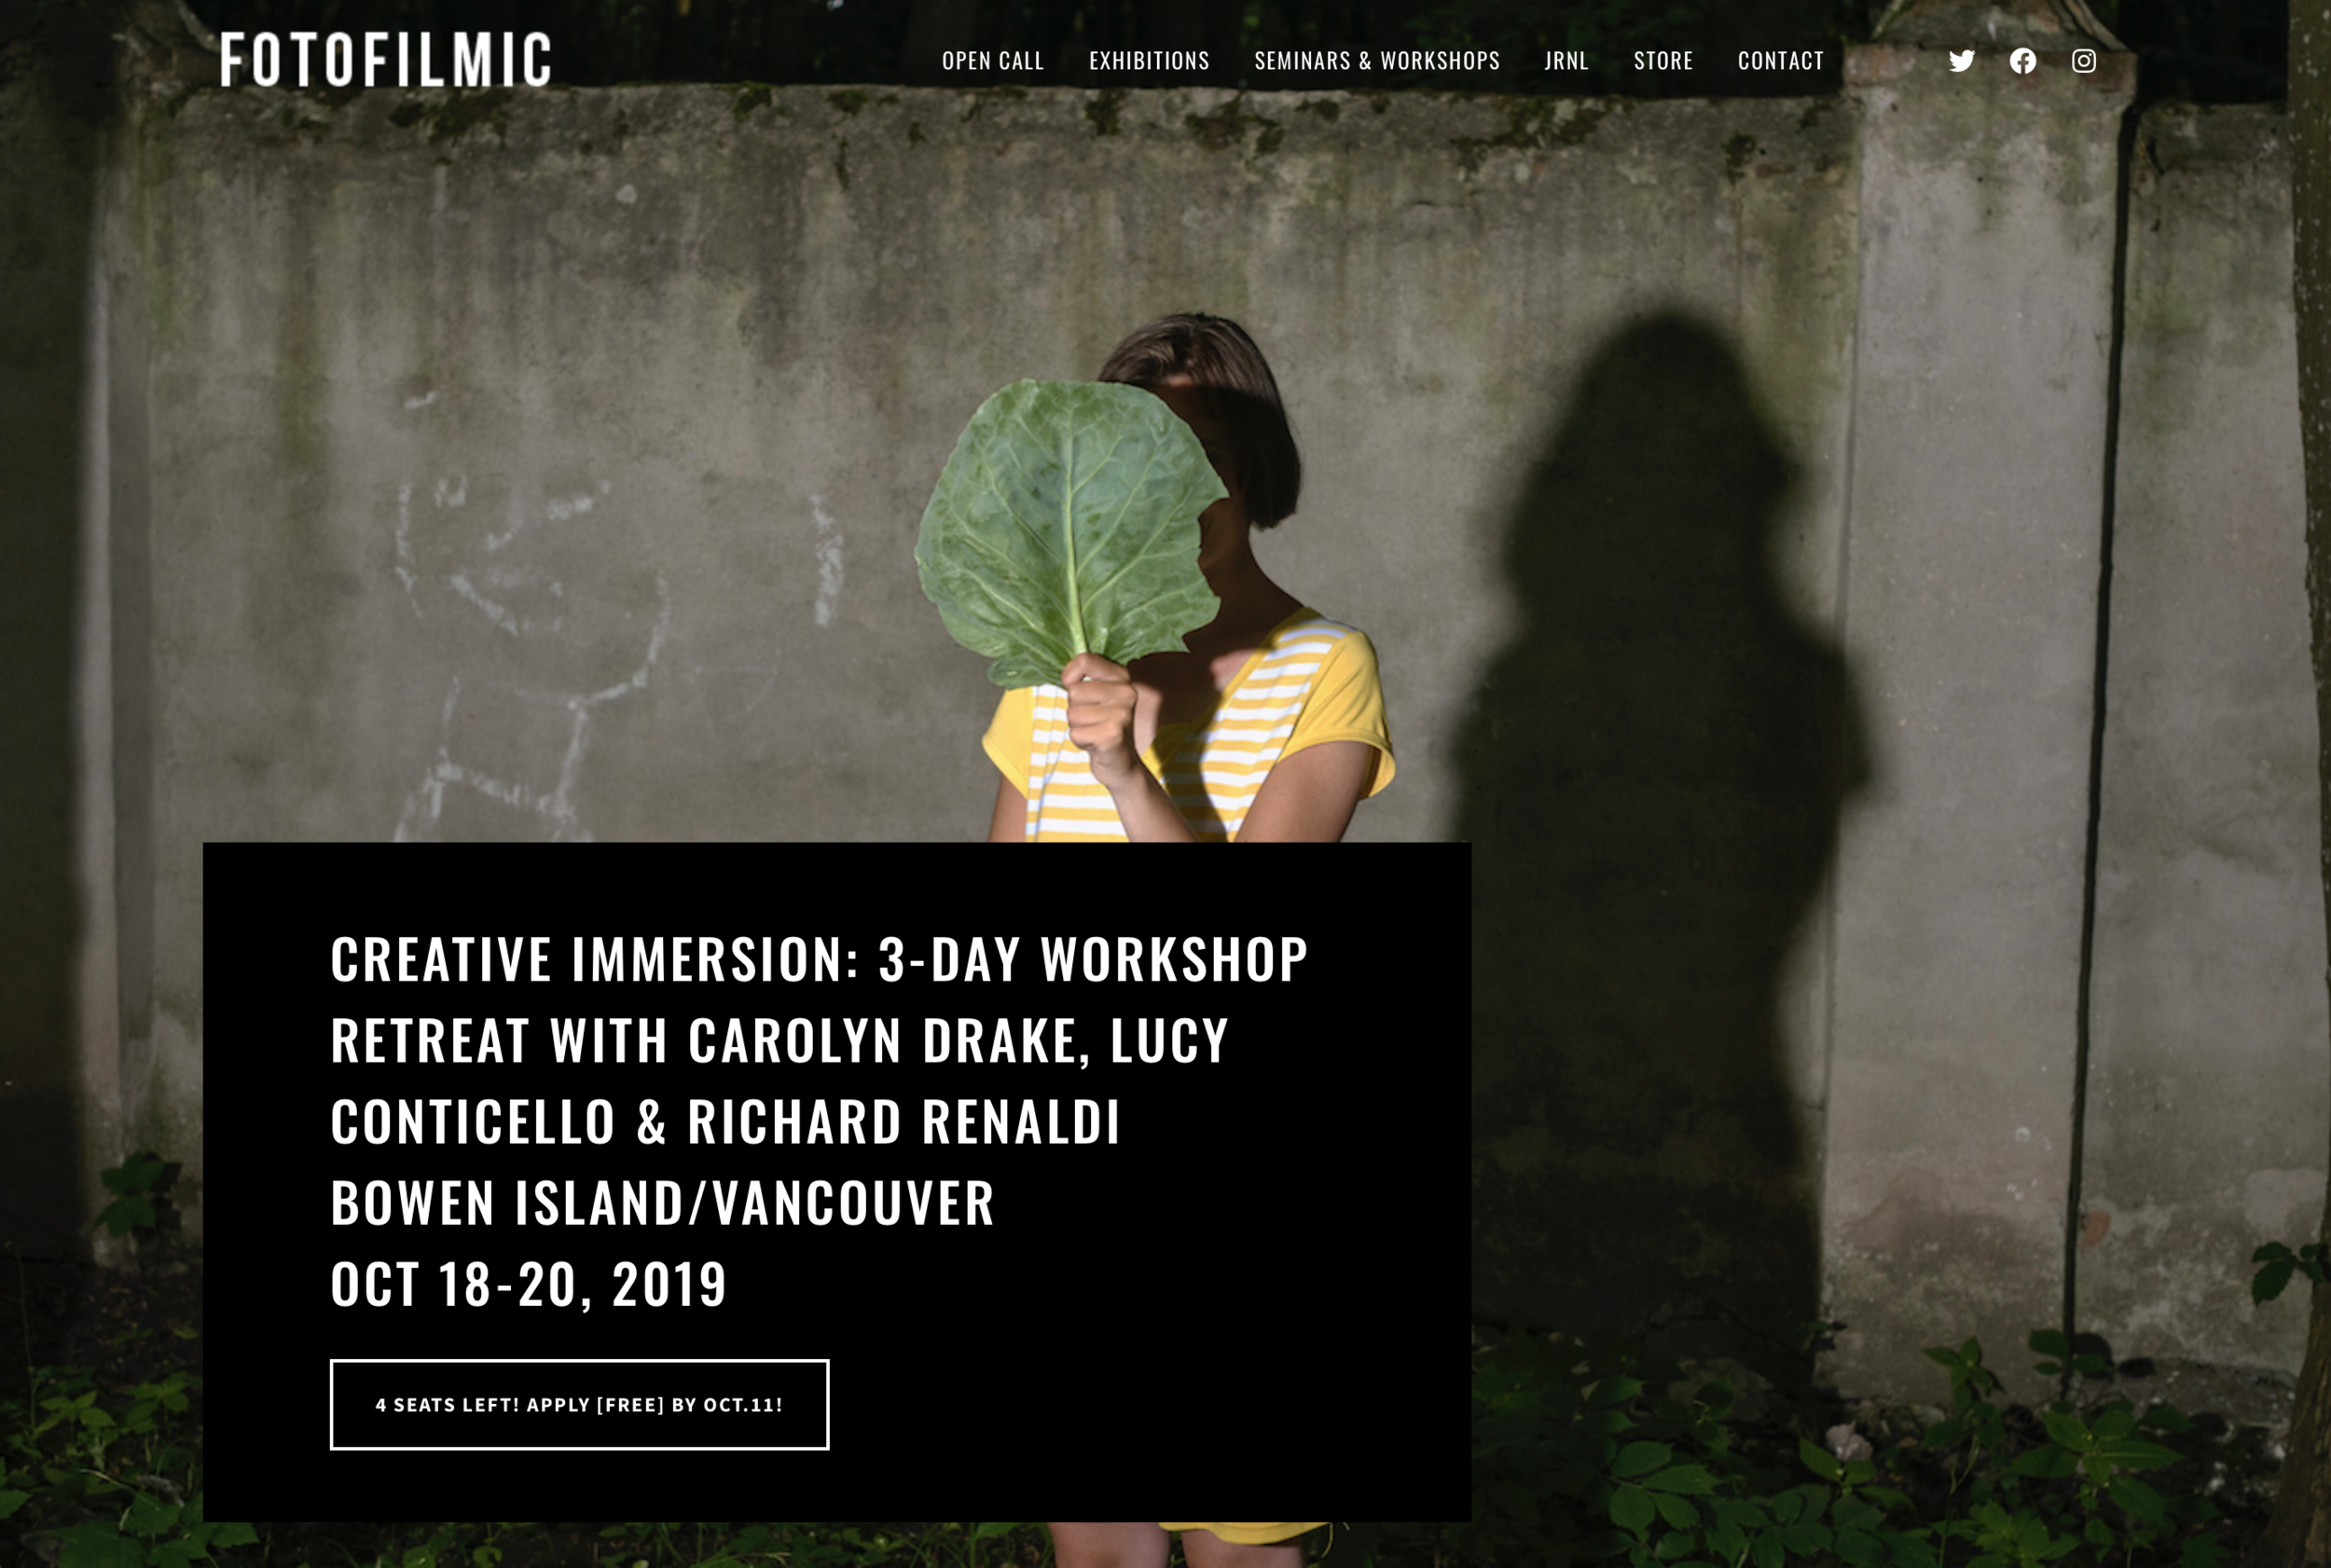 Upcoming Workshop – Bowen Island - Oct 18-20 Ill be leading a workshop on Bowen Island/Vancouver along with Richard Renaldi and Lucy Conticello, organized by Fotofilmic